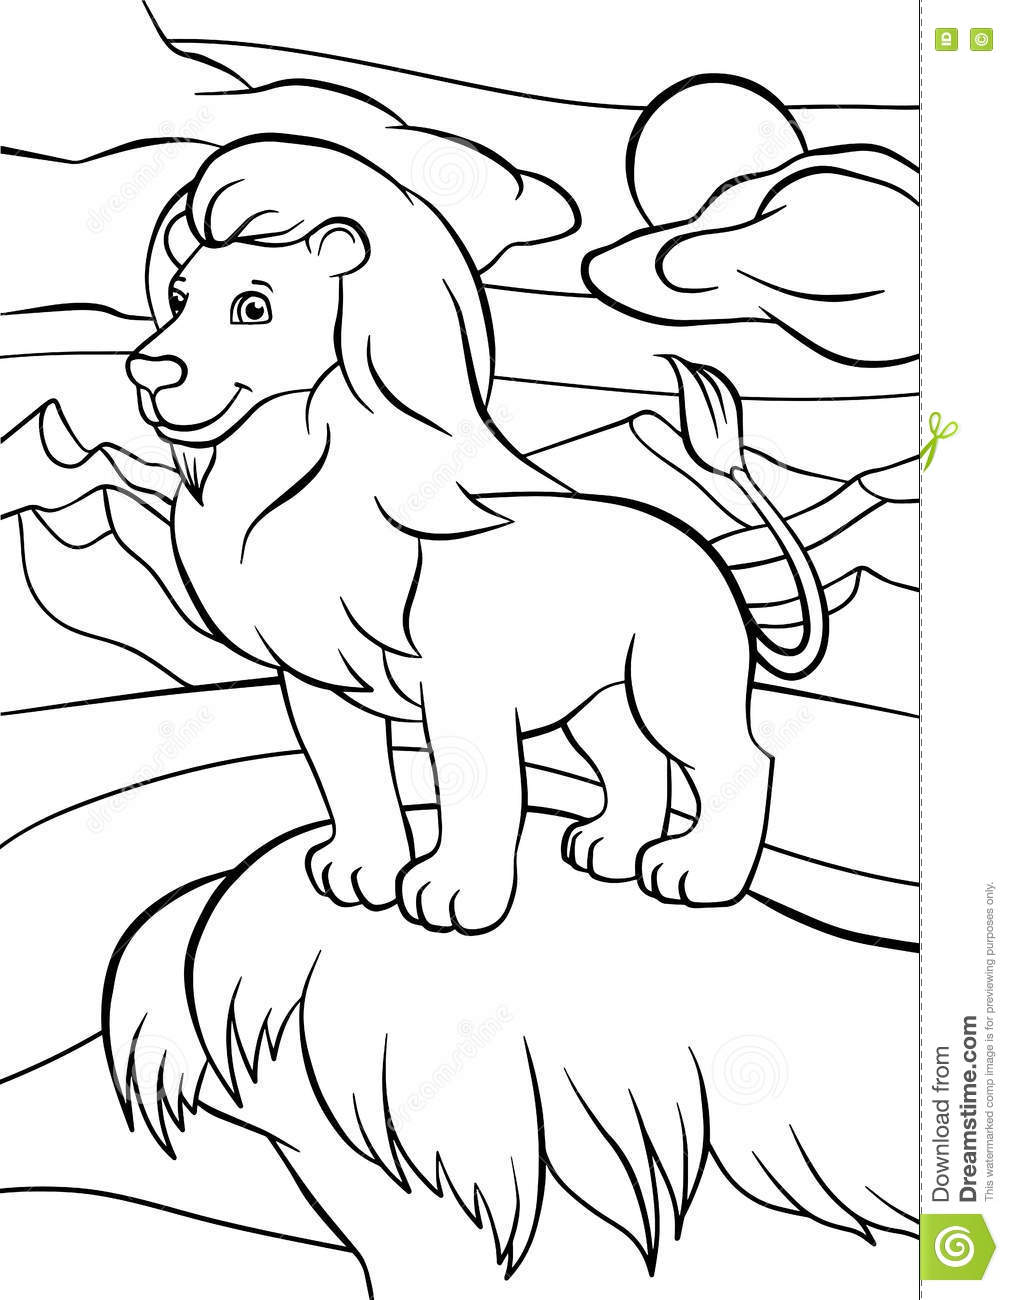 Lion Outline Colouring Stock Illustrations 95 Lion Outline Colouring Stock Illustrations Vectors Clipart Dreamstime There are 129 lion outline png for sale on etsy, and they cost $2.89 on average. lion outline colouring stock illustrations 95 lion outline colouring stock illustrations vectors clipart dreamstime